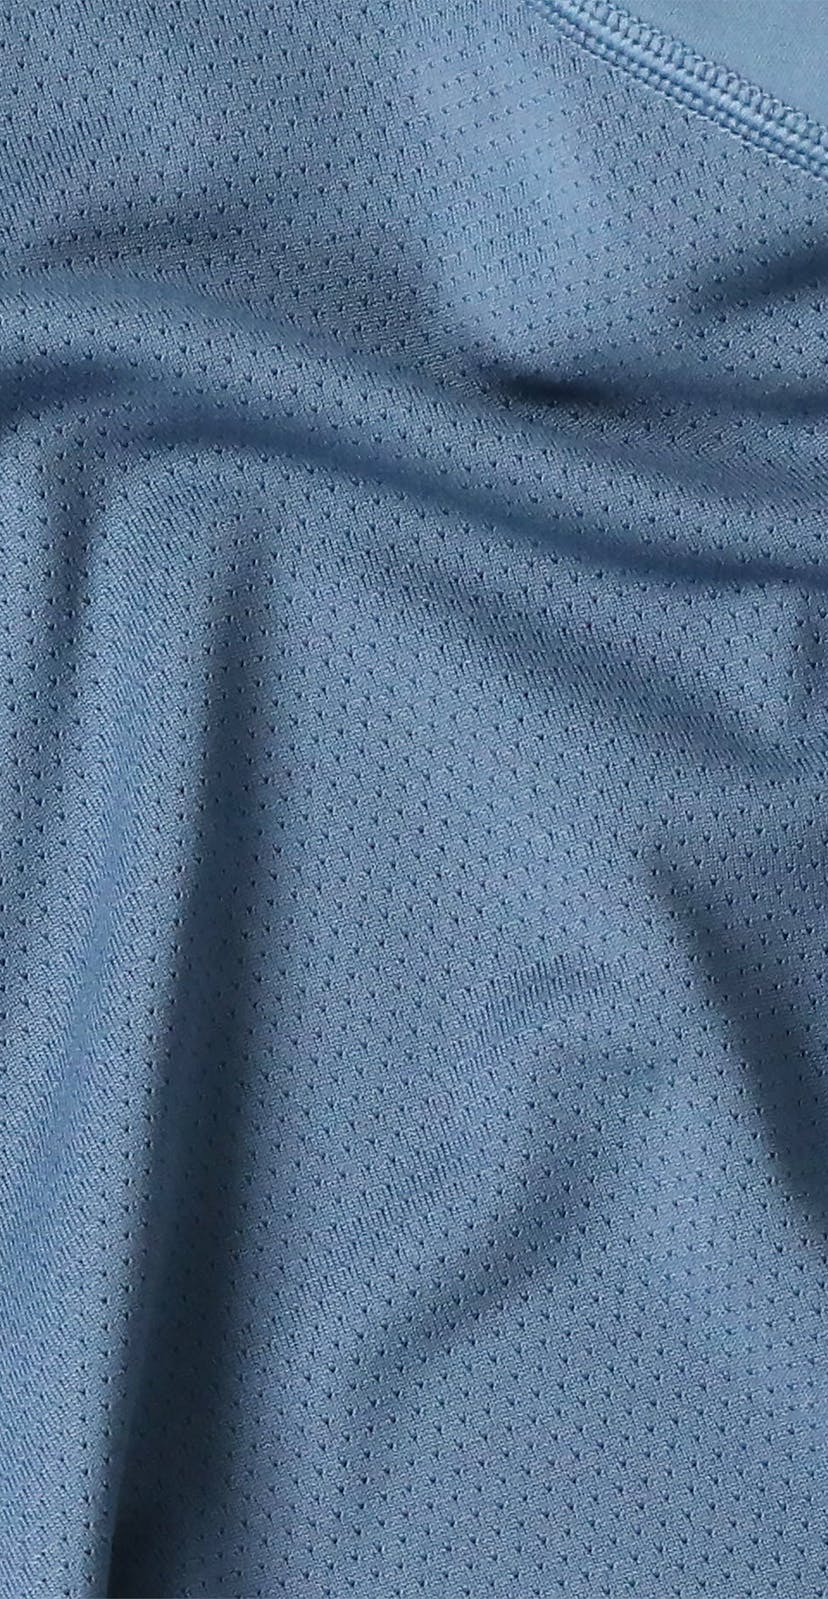 Tolland S/S Jersey Detail